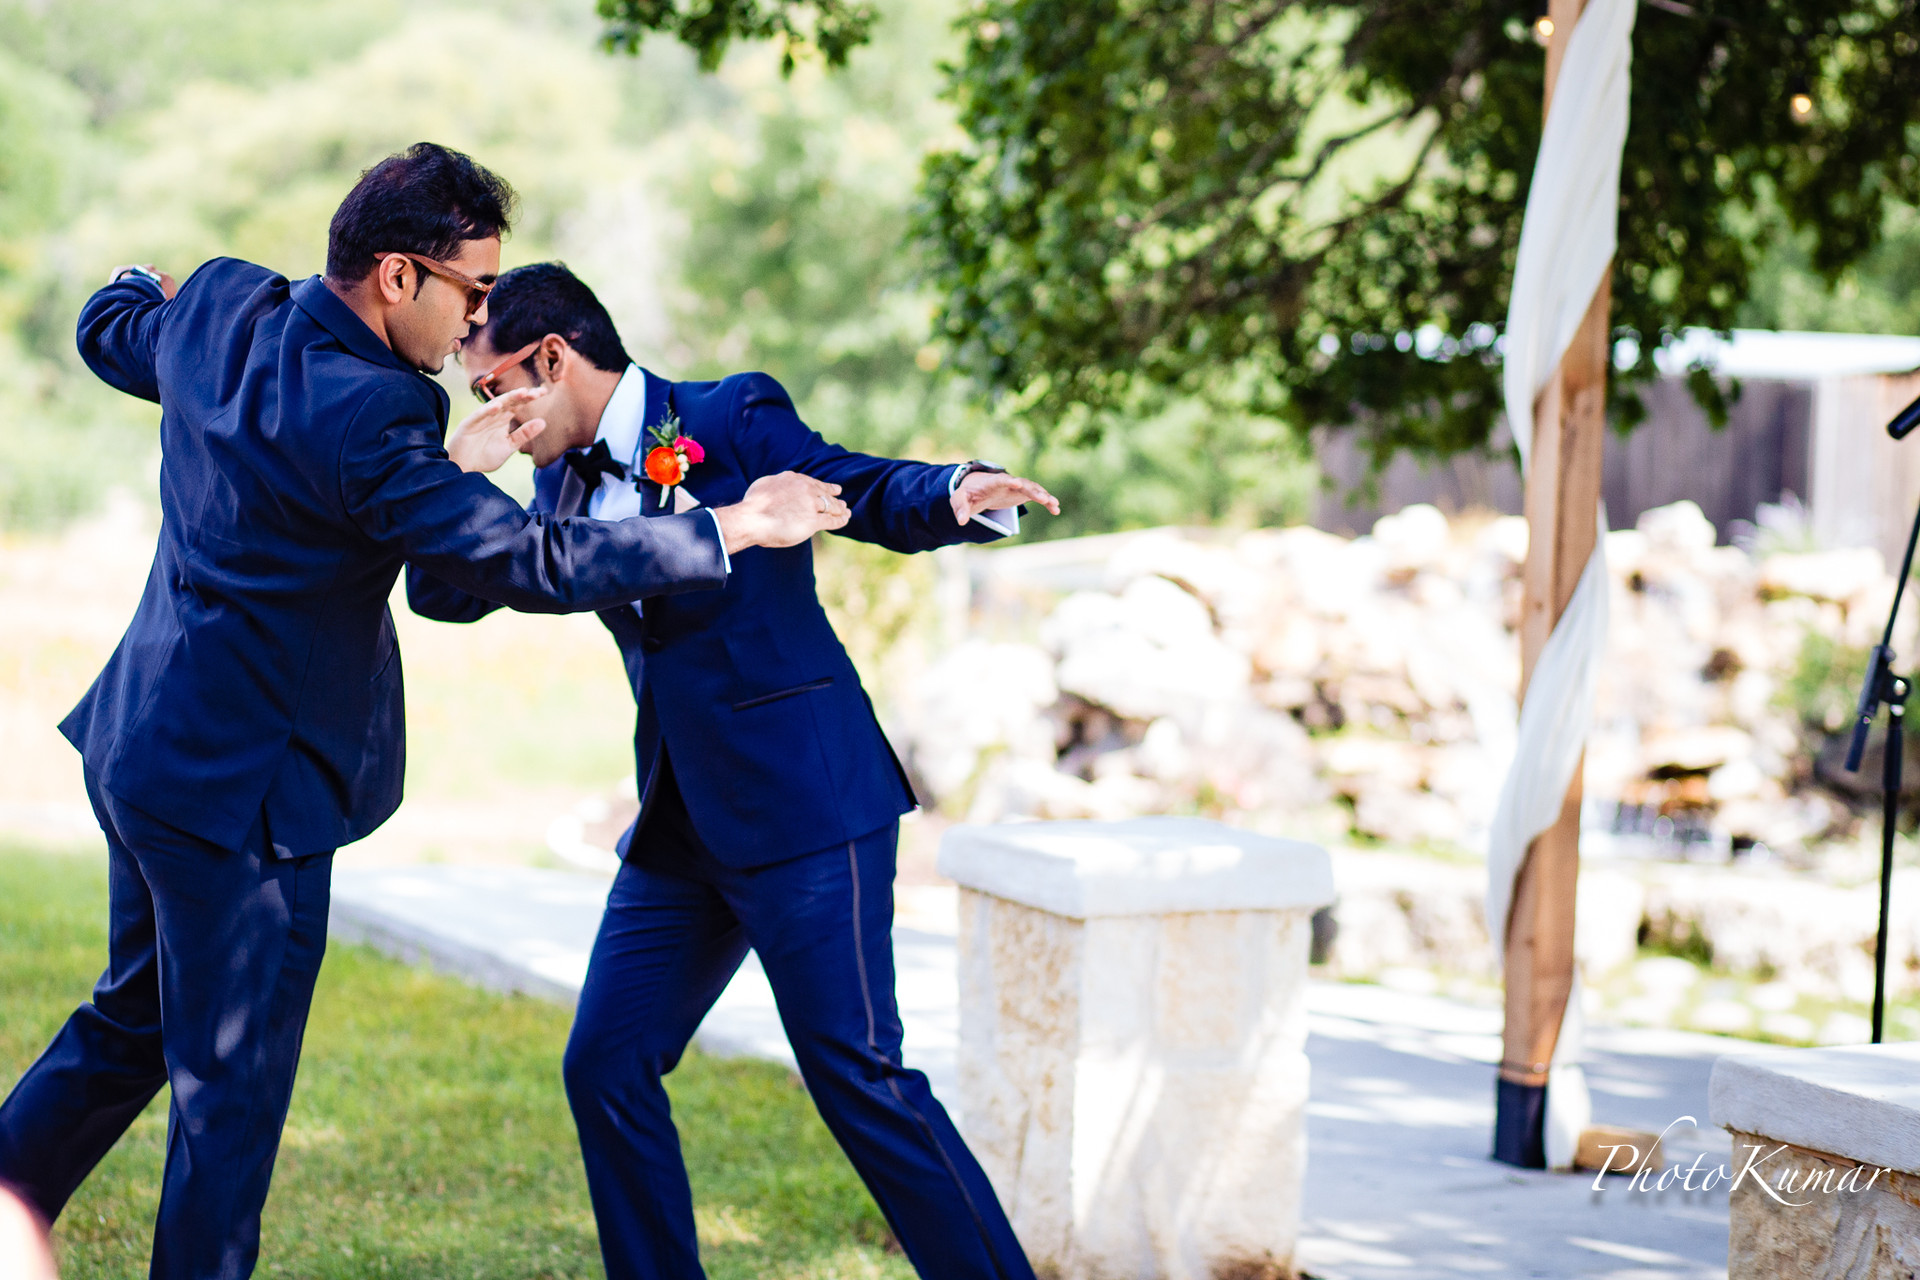 PhotoKumar-Jackie and Sid-Wedding (22 of